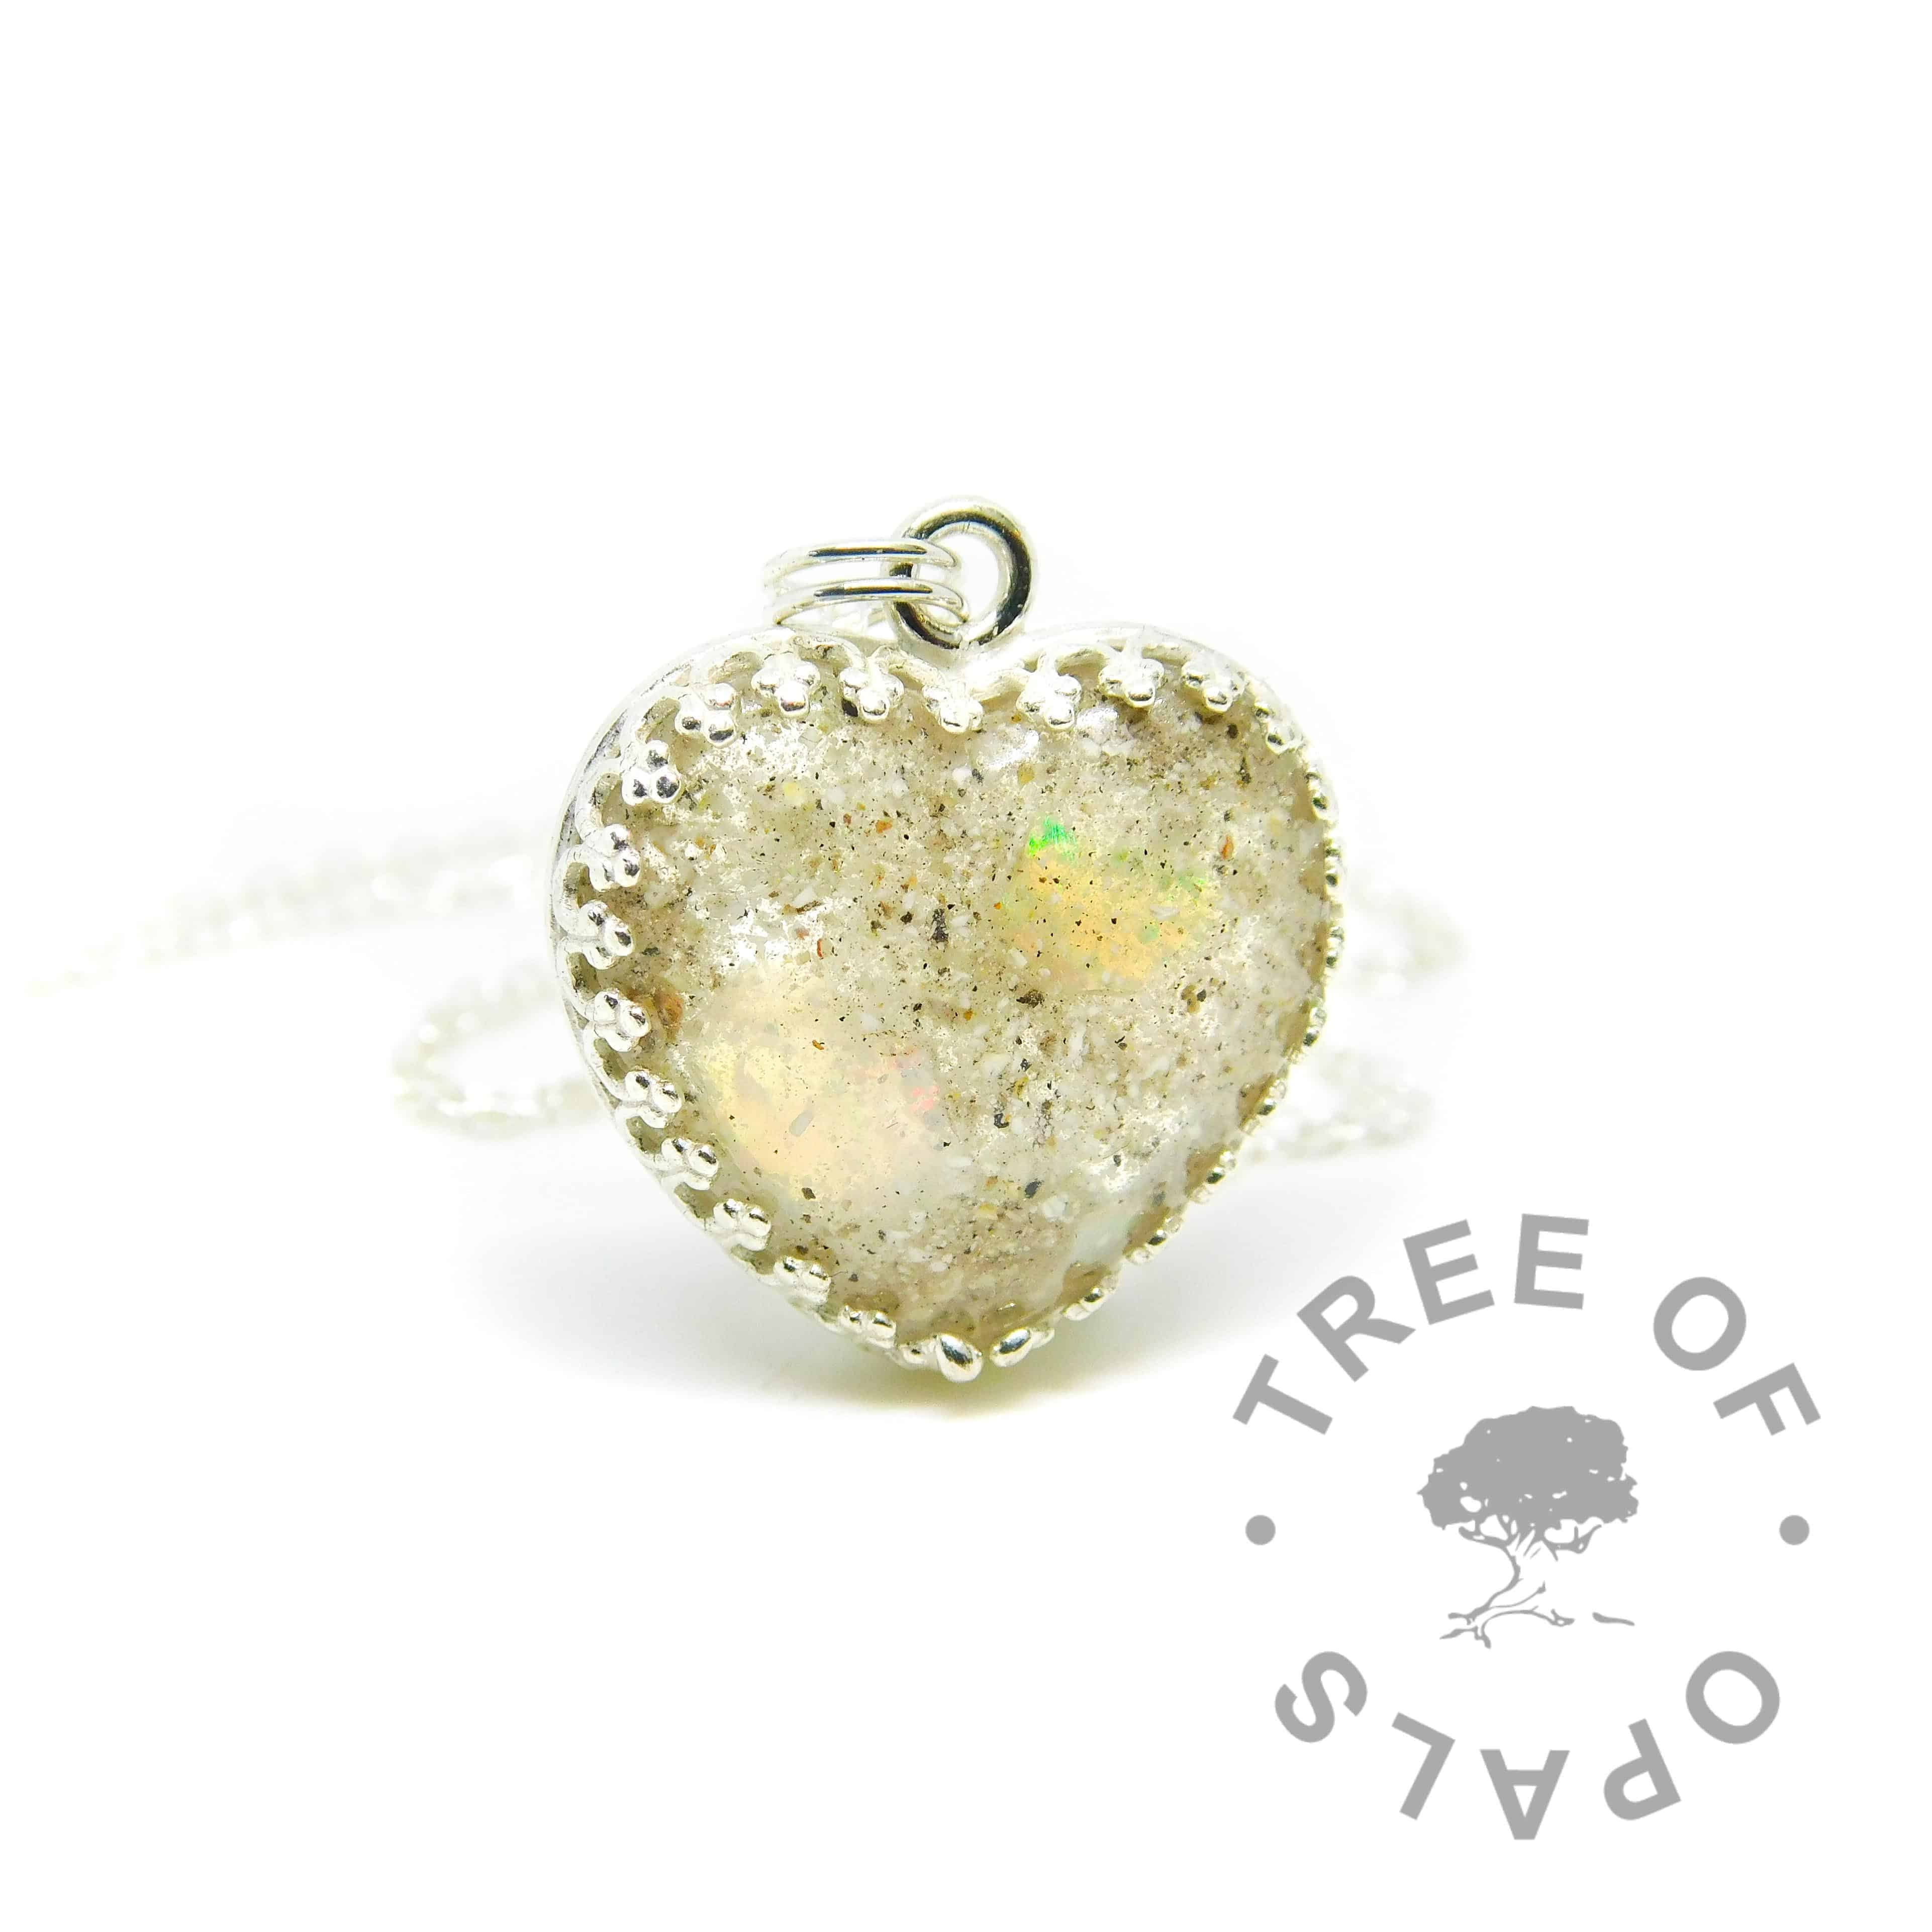 Classic cremation ash heart necklace with clear resin (no sparkle mix), rough natural opal slices October birthstone. Solid sterling silver 20mm crown point heart setting (925 stamped on the back). Light medium classic chain necklace upgrade shown (sold separately). Watermarked copyright Tree of Opals memorial jewellery image